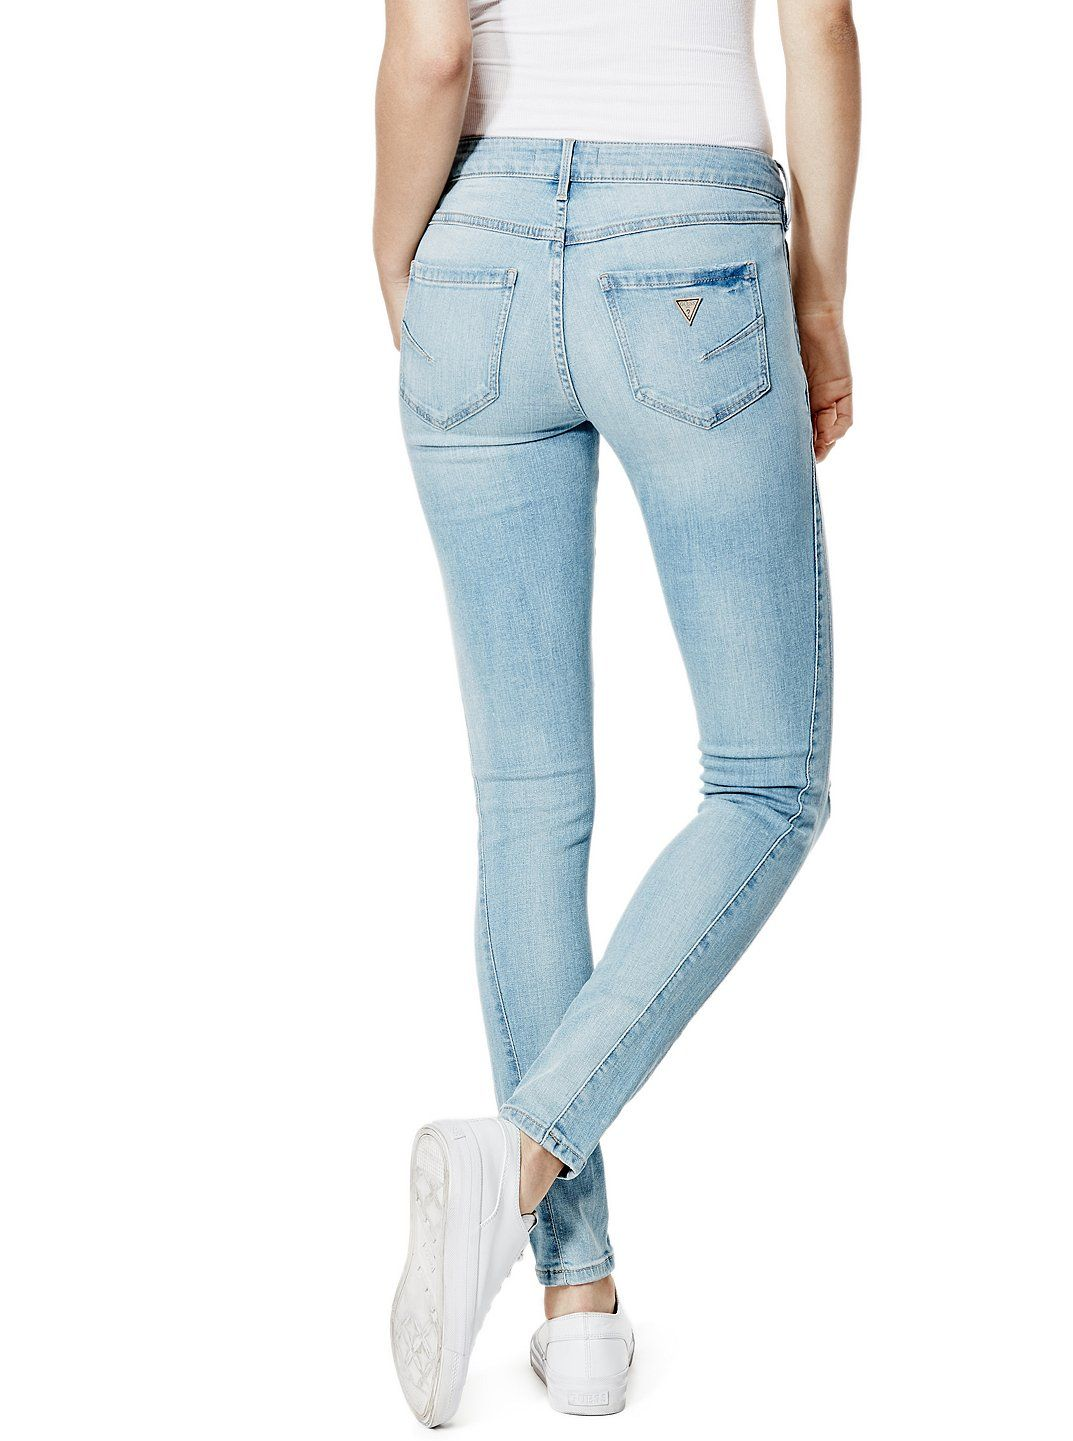 Isabel Mid Rise Curvy Skinny Jeans in Action Wash GISTA  GUESS